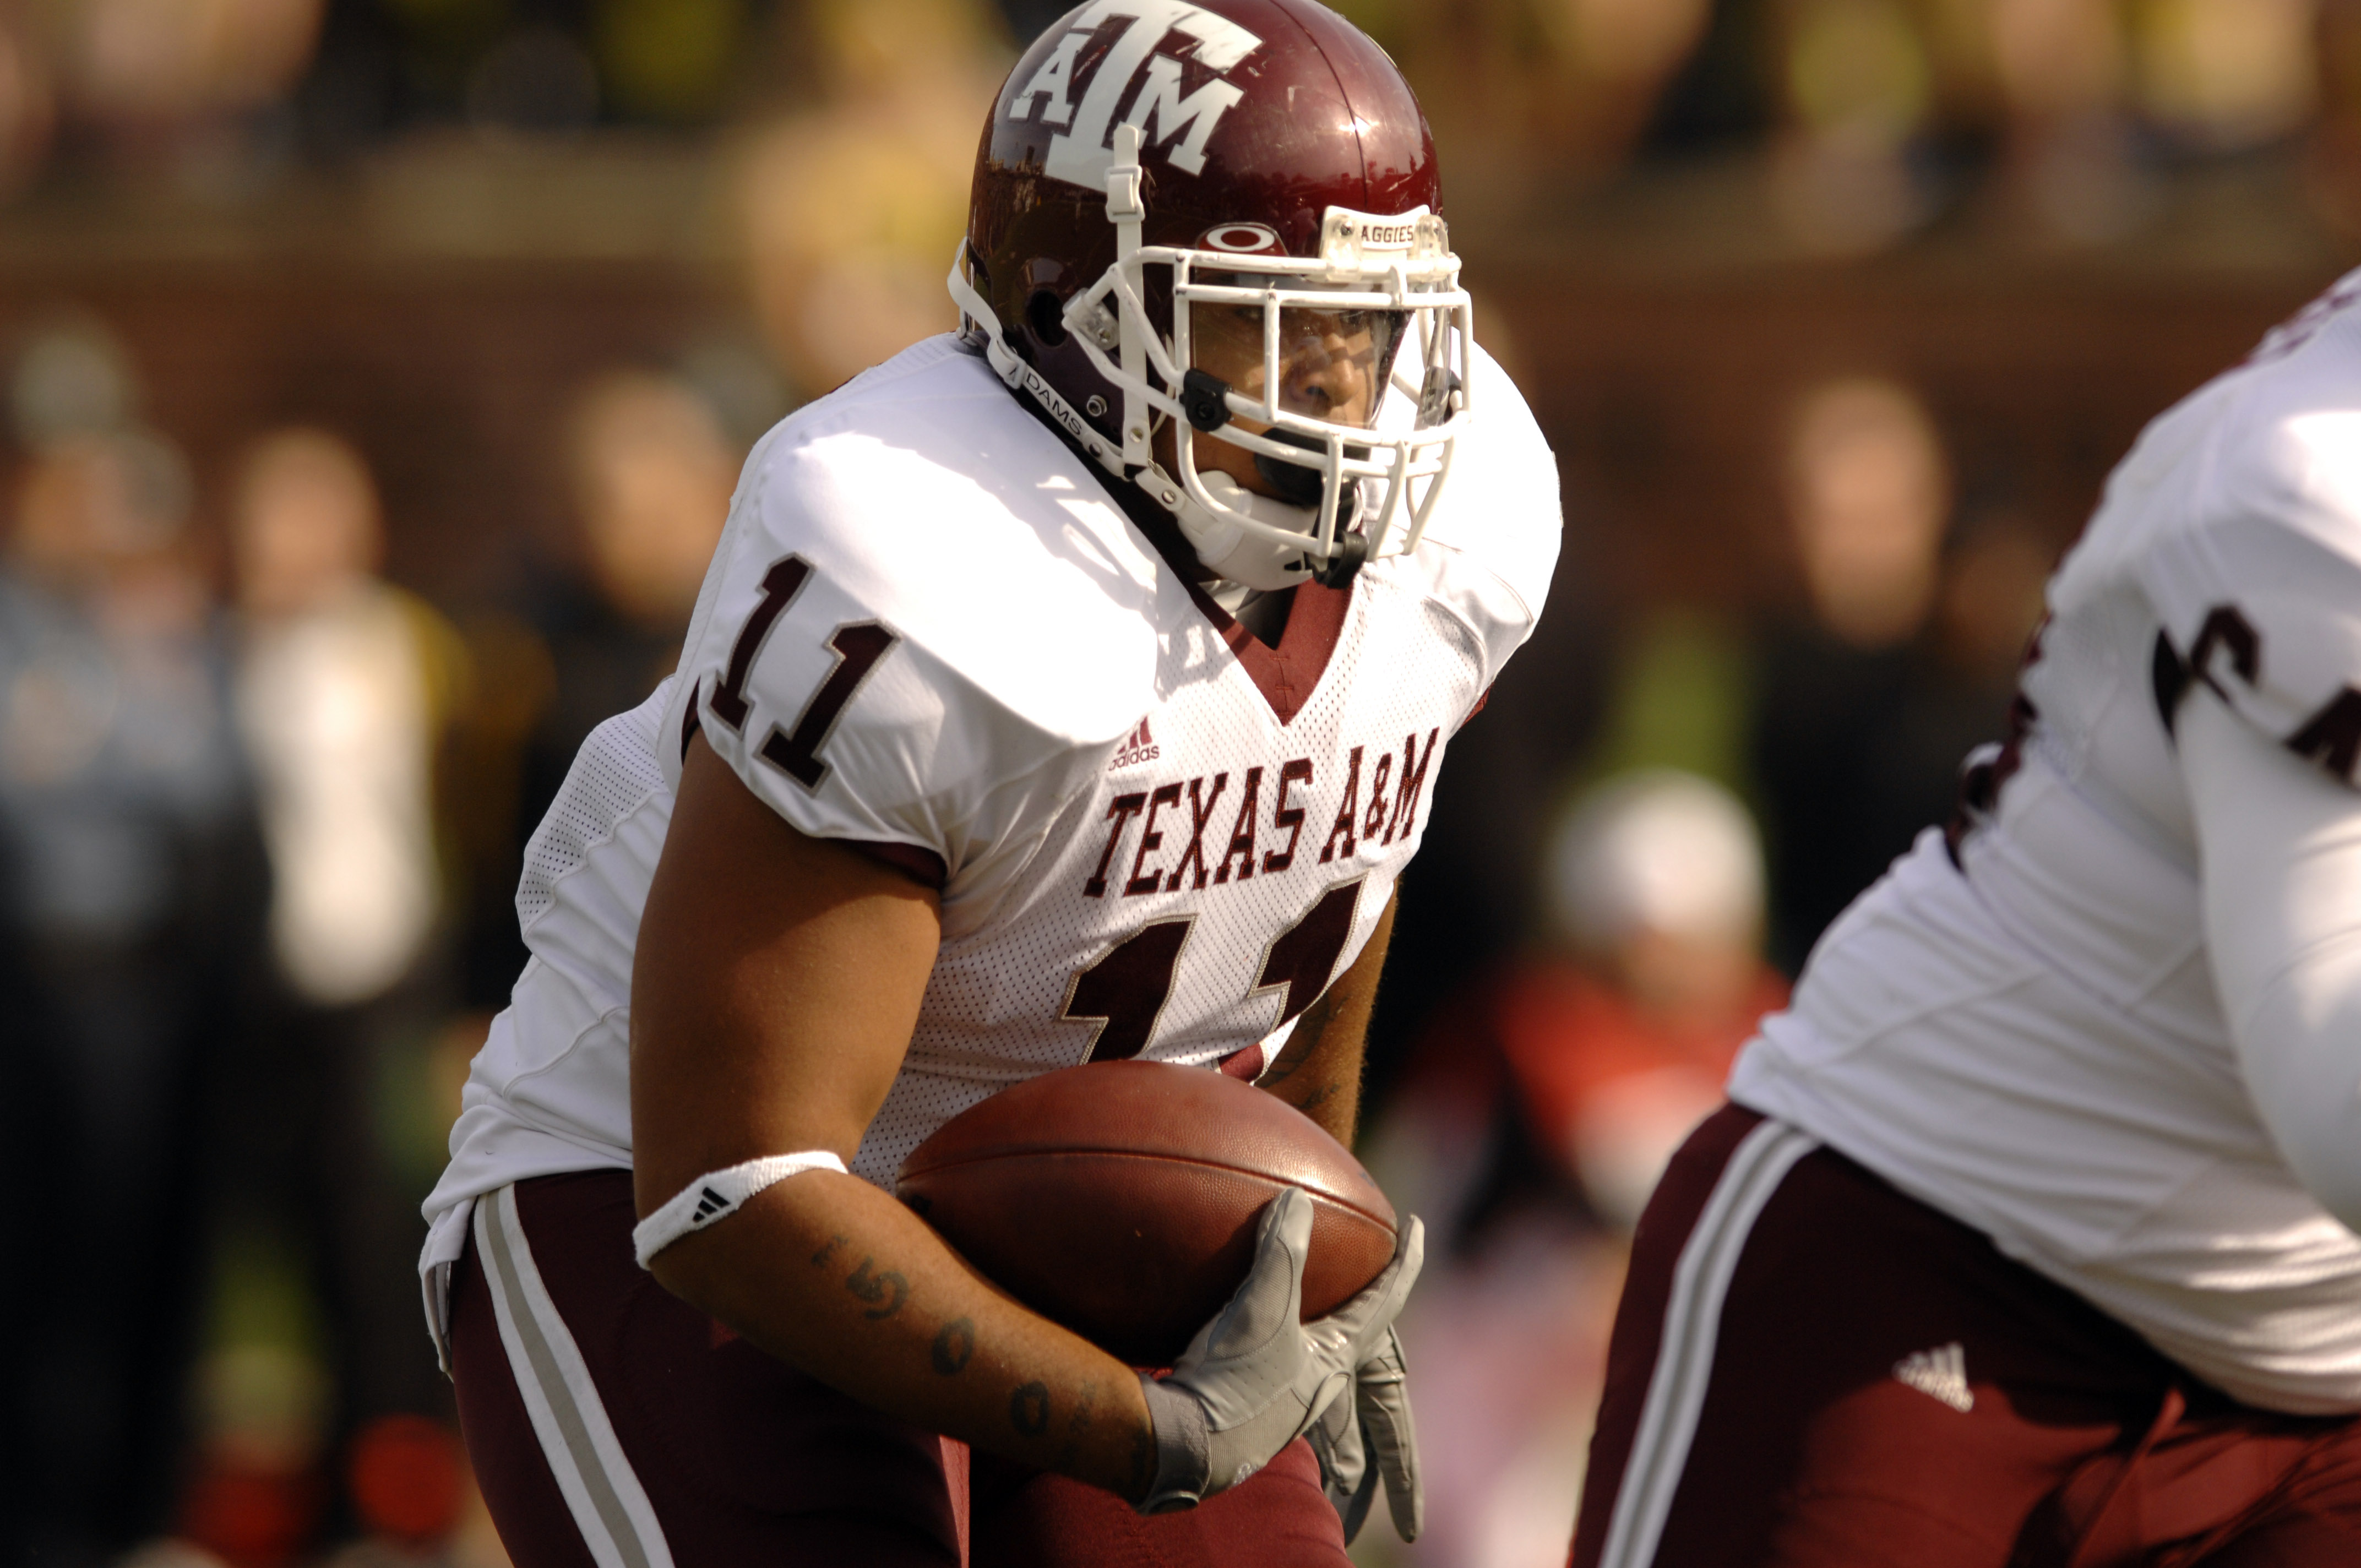 Texas A&M running back Jorvorskie Lane runs with the ball during a college football game against Missouri Saturday, Nov. 10, 2007, in Columbia, Mo. Missouri won the game, 40-26. (AP Photo/L.G. Patterson)